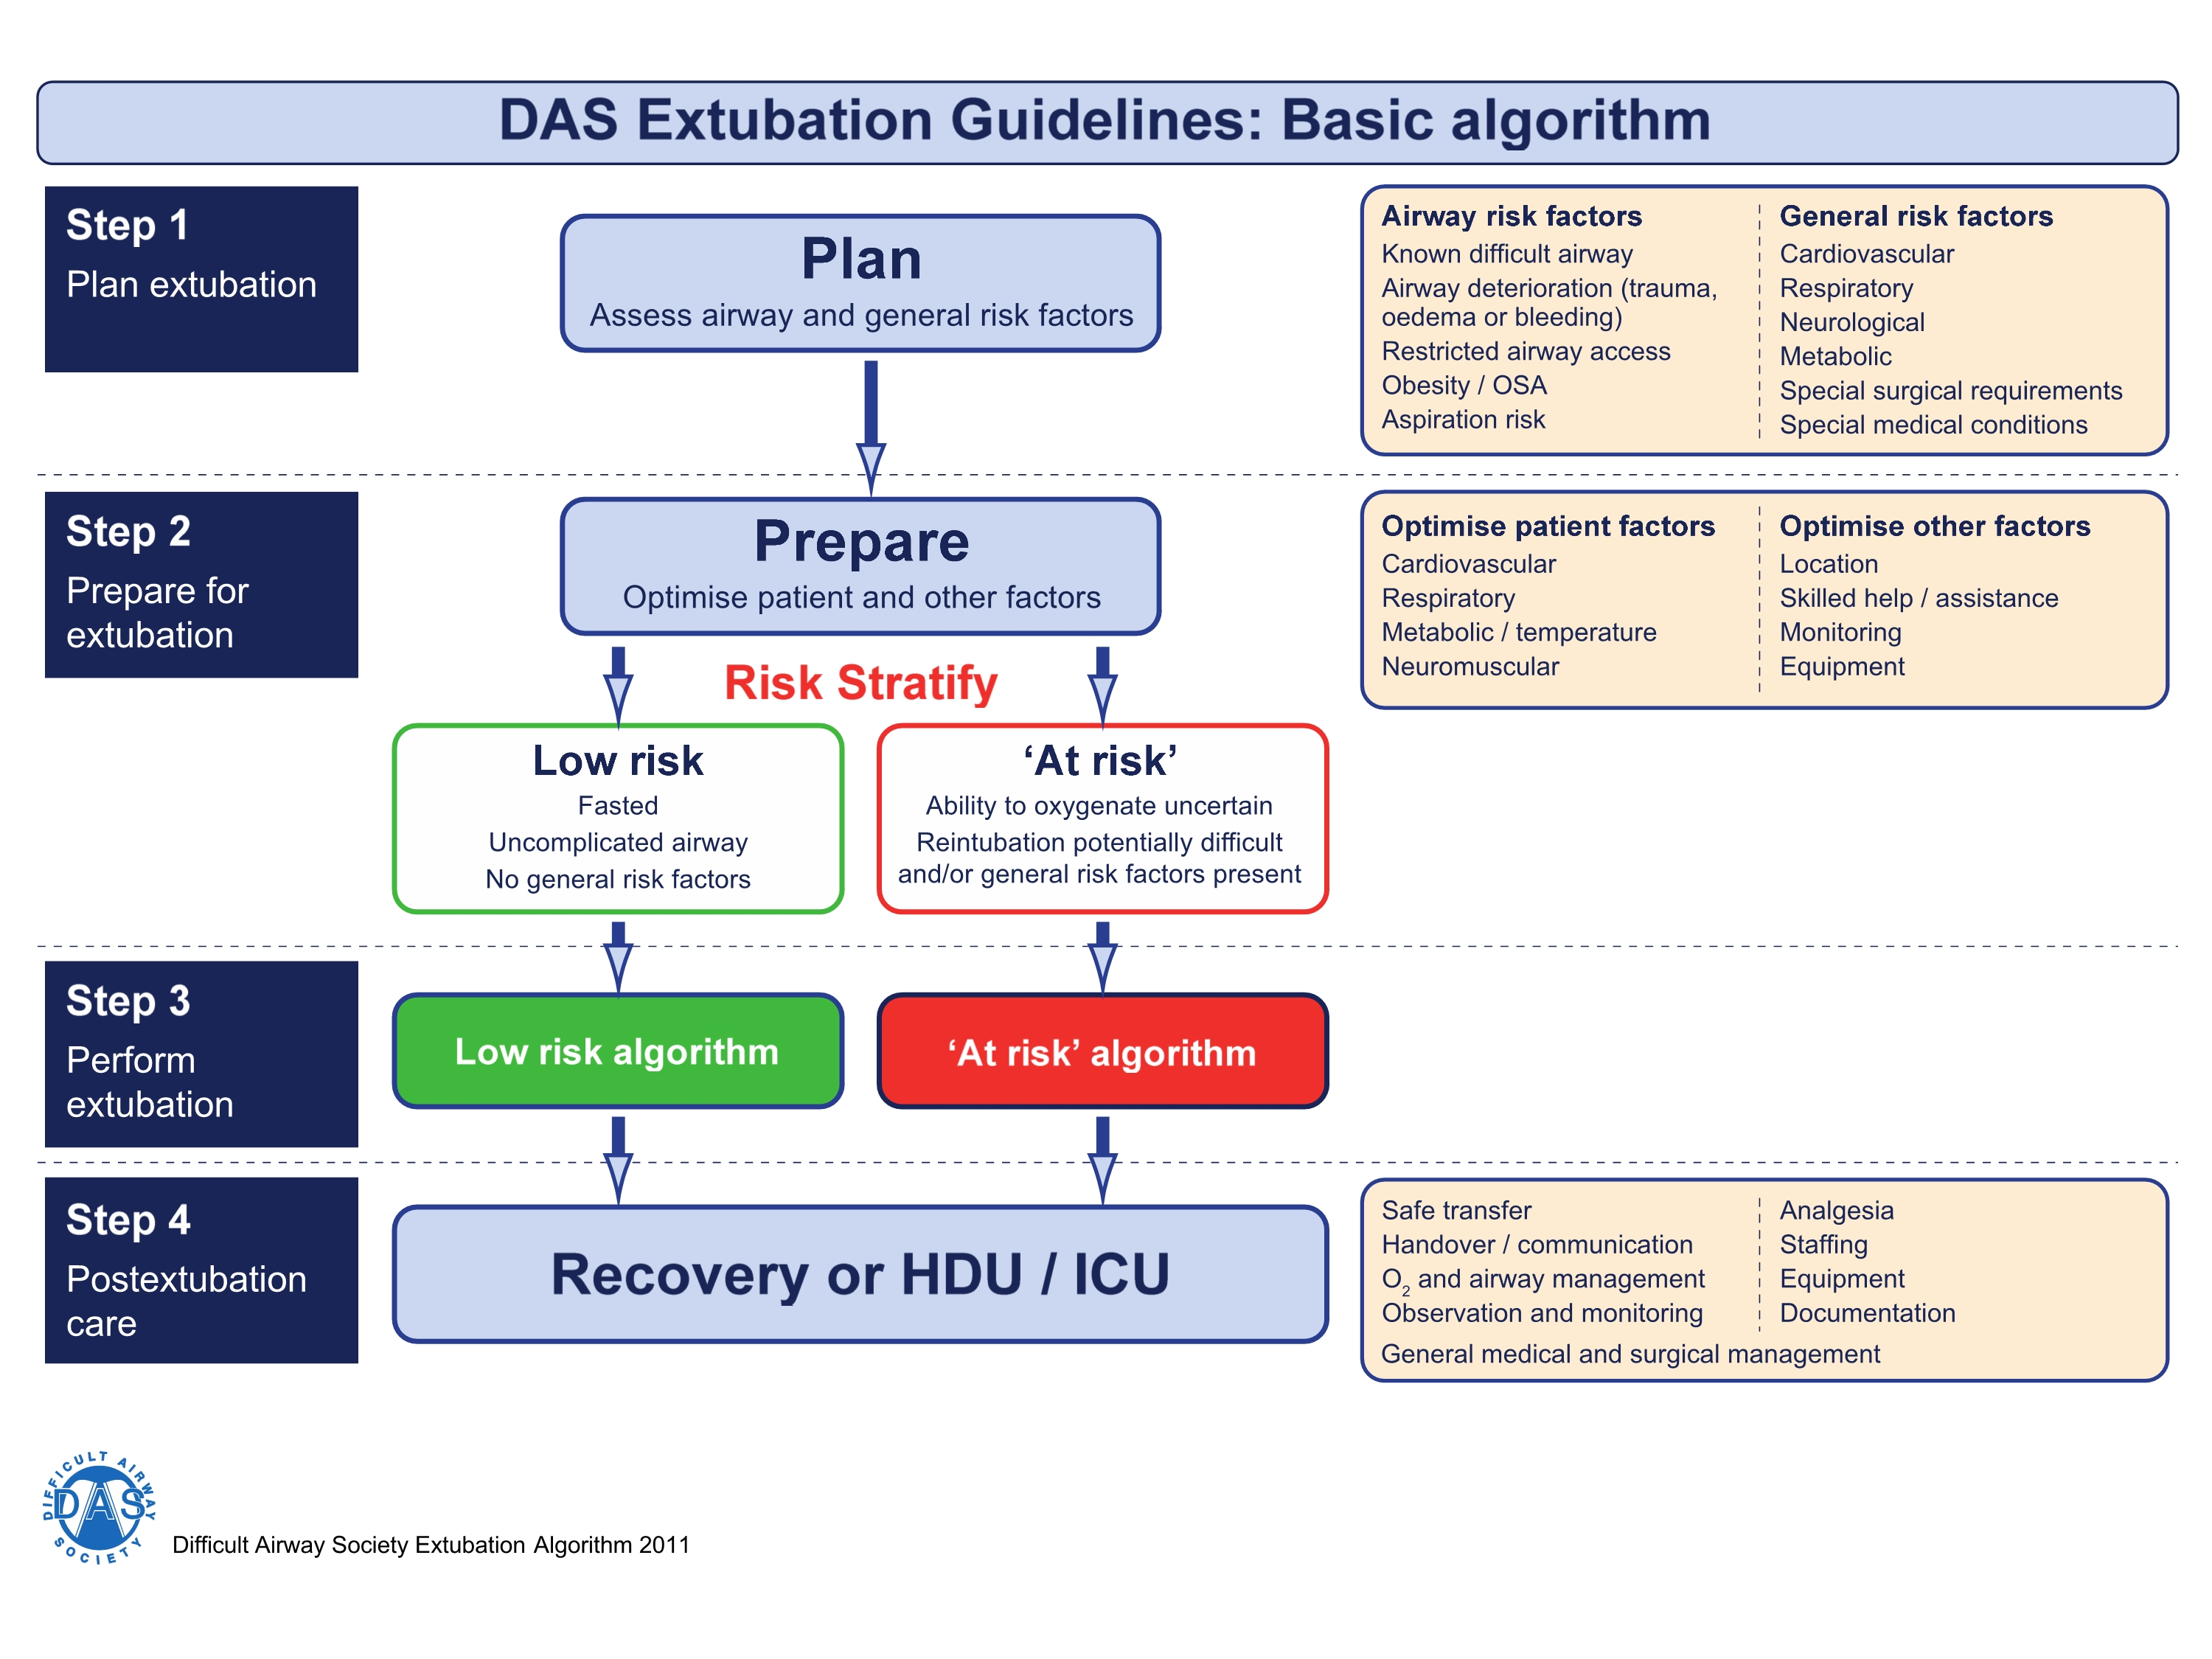 2015 DAS extubation guidelines